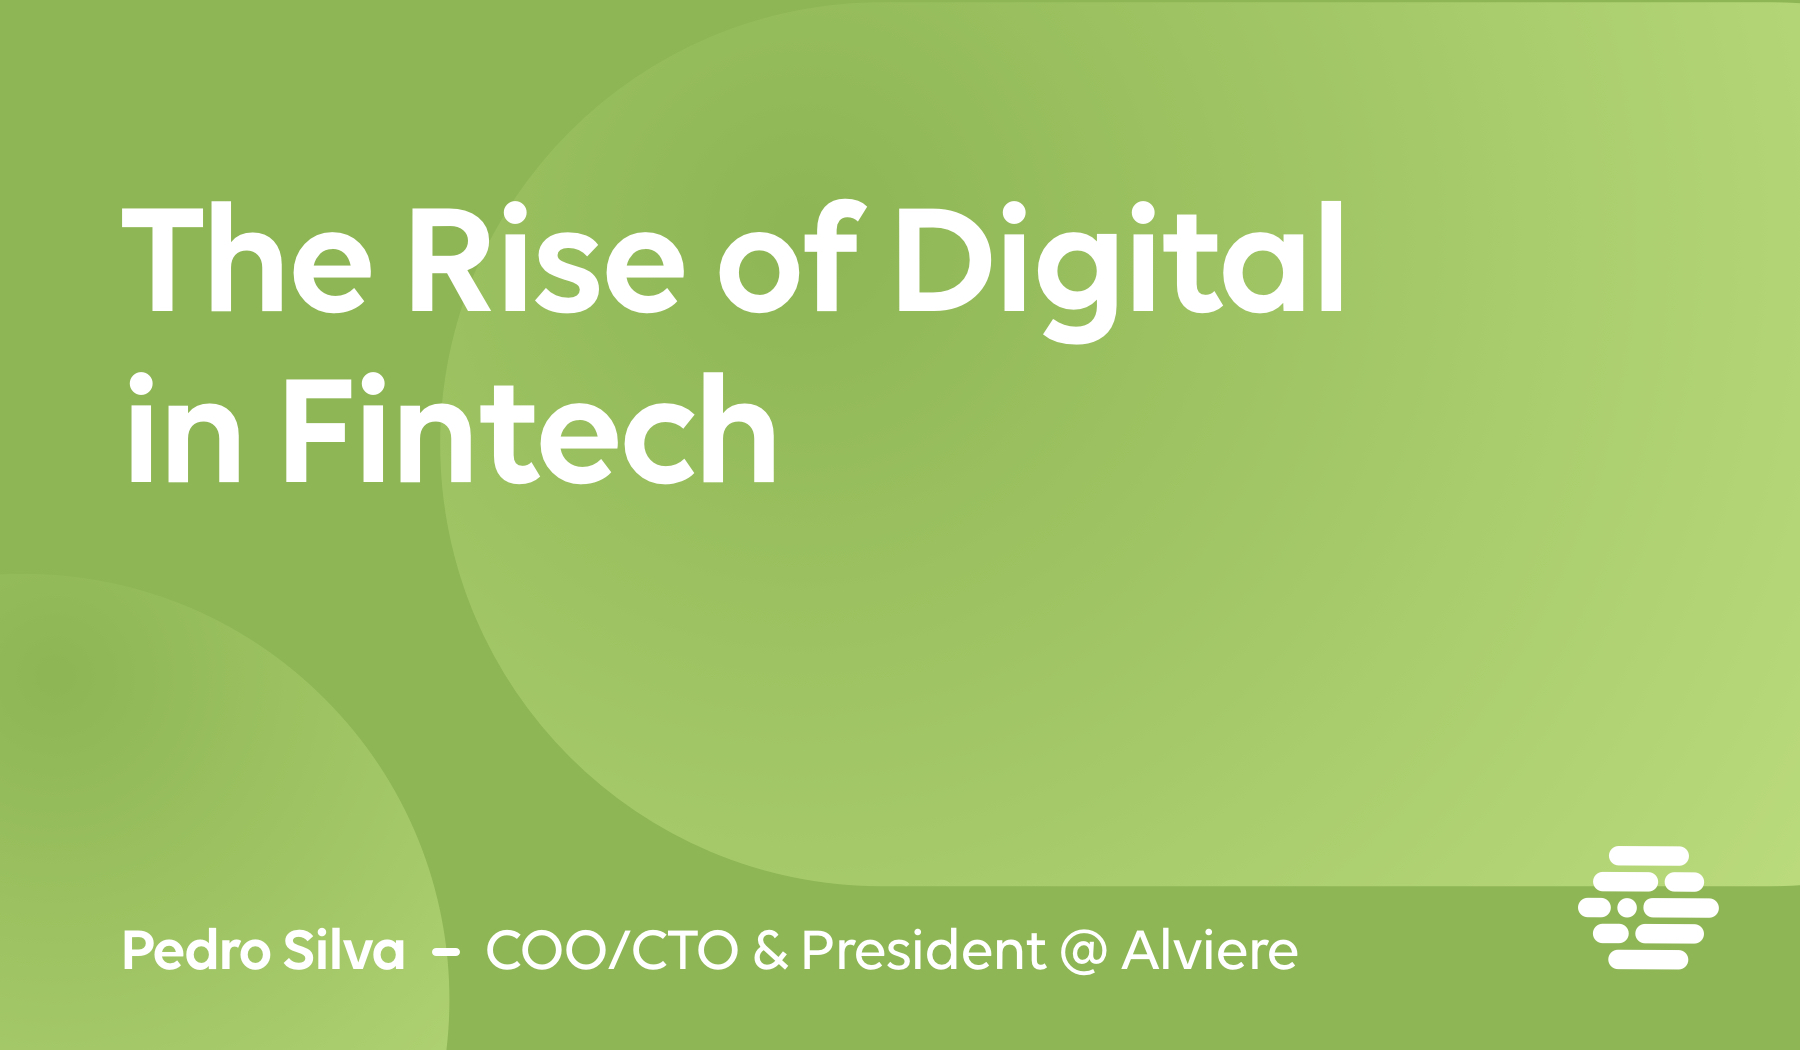 The Rise of Digital in Fintech